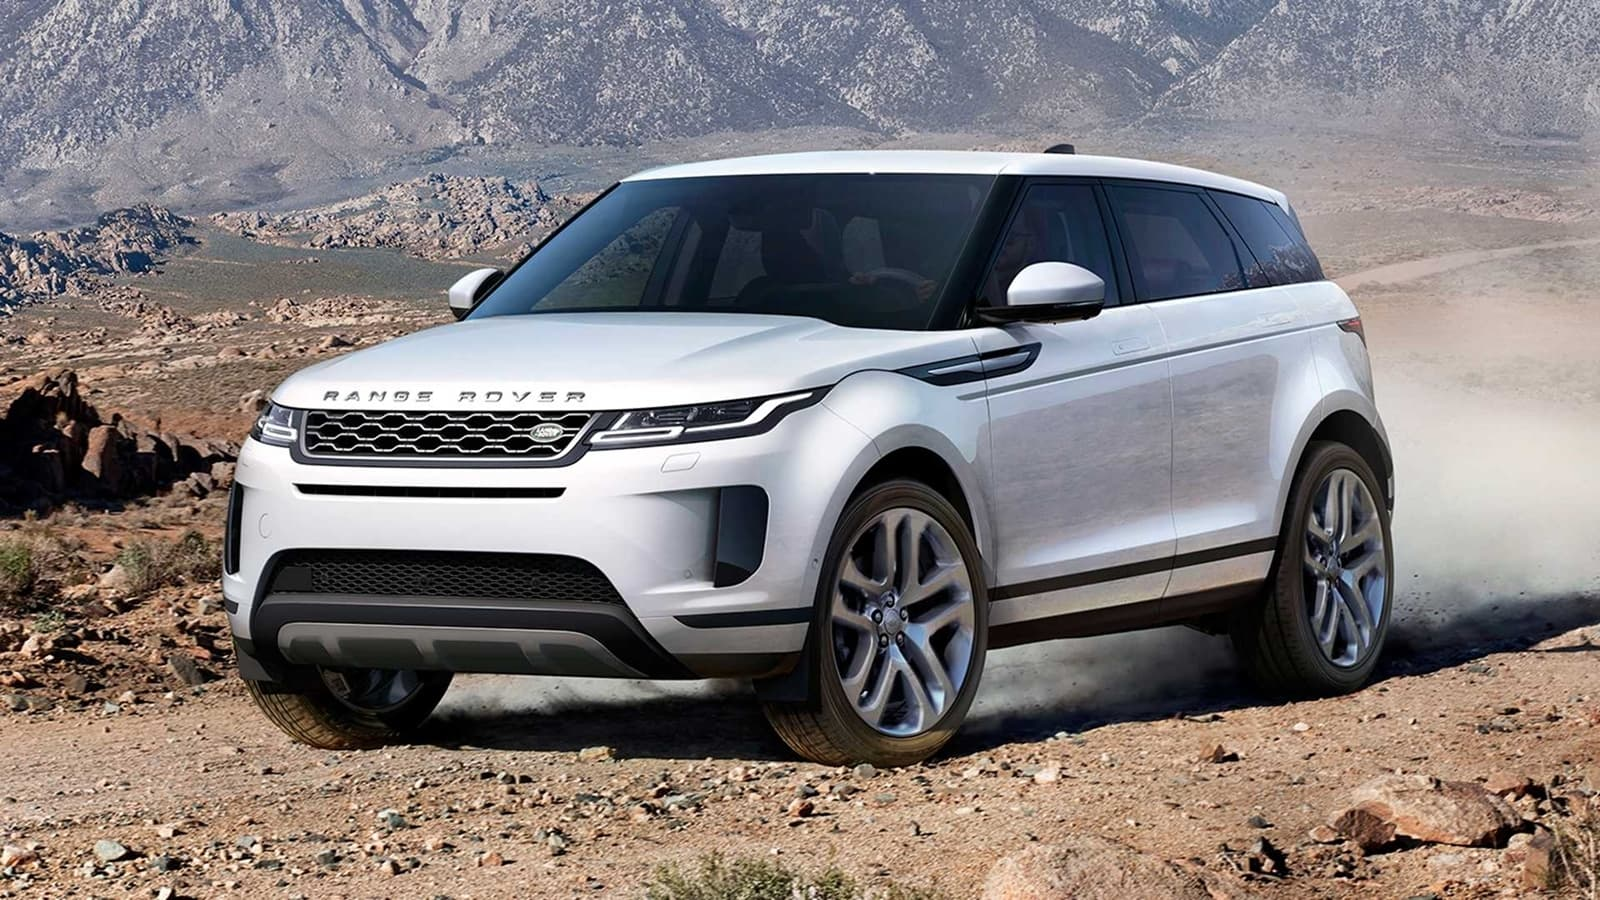 range rover evoque 2019 todos los detalles del velar en. Black Bedroom Furniture Sets. Home Design Ideas